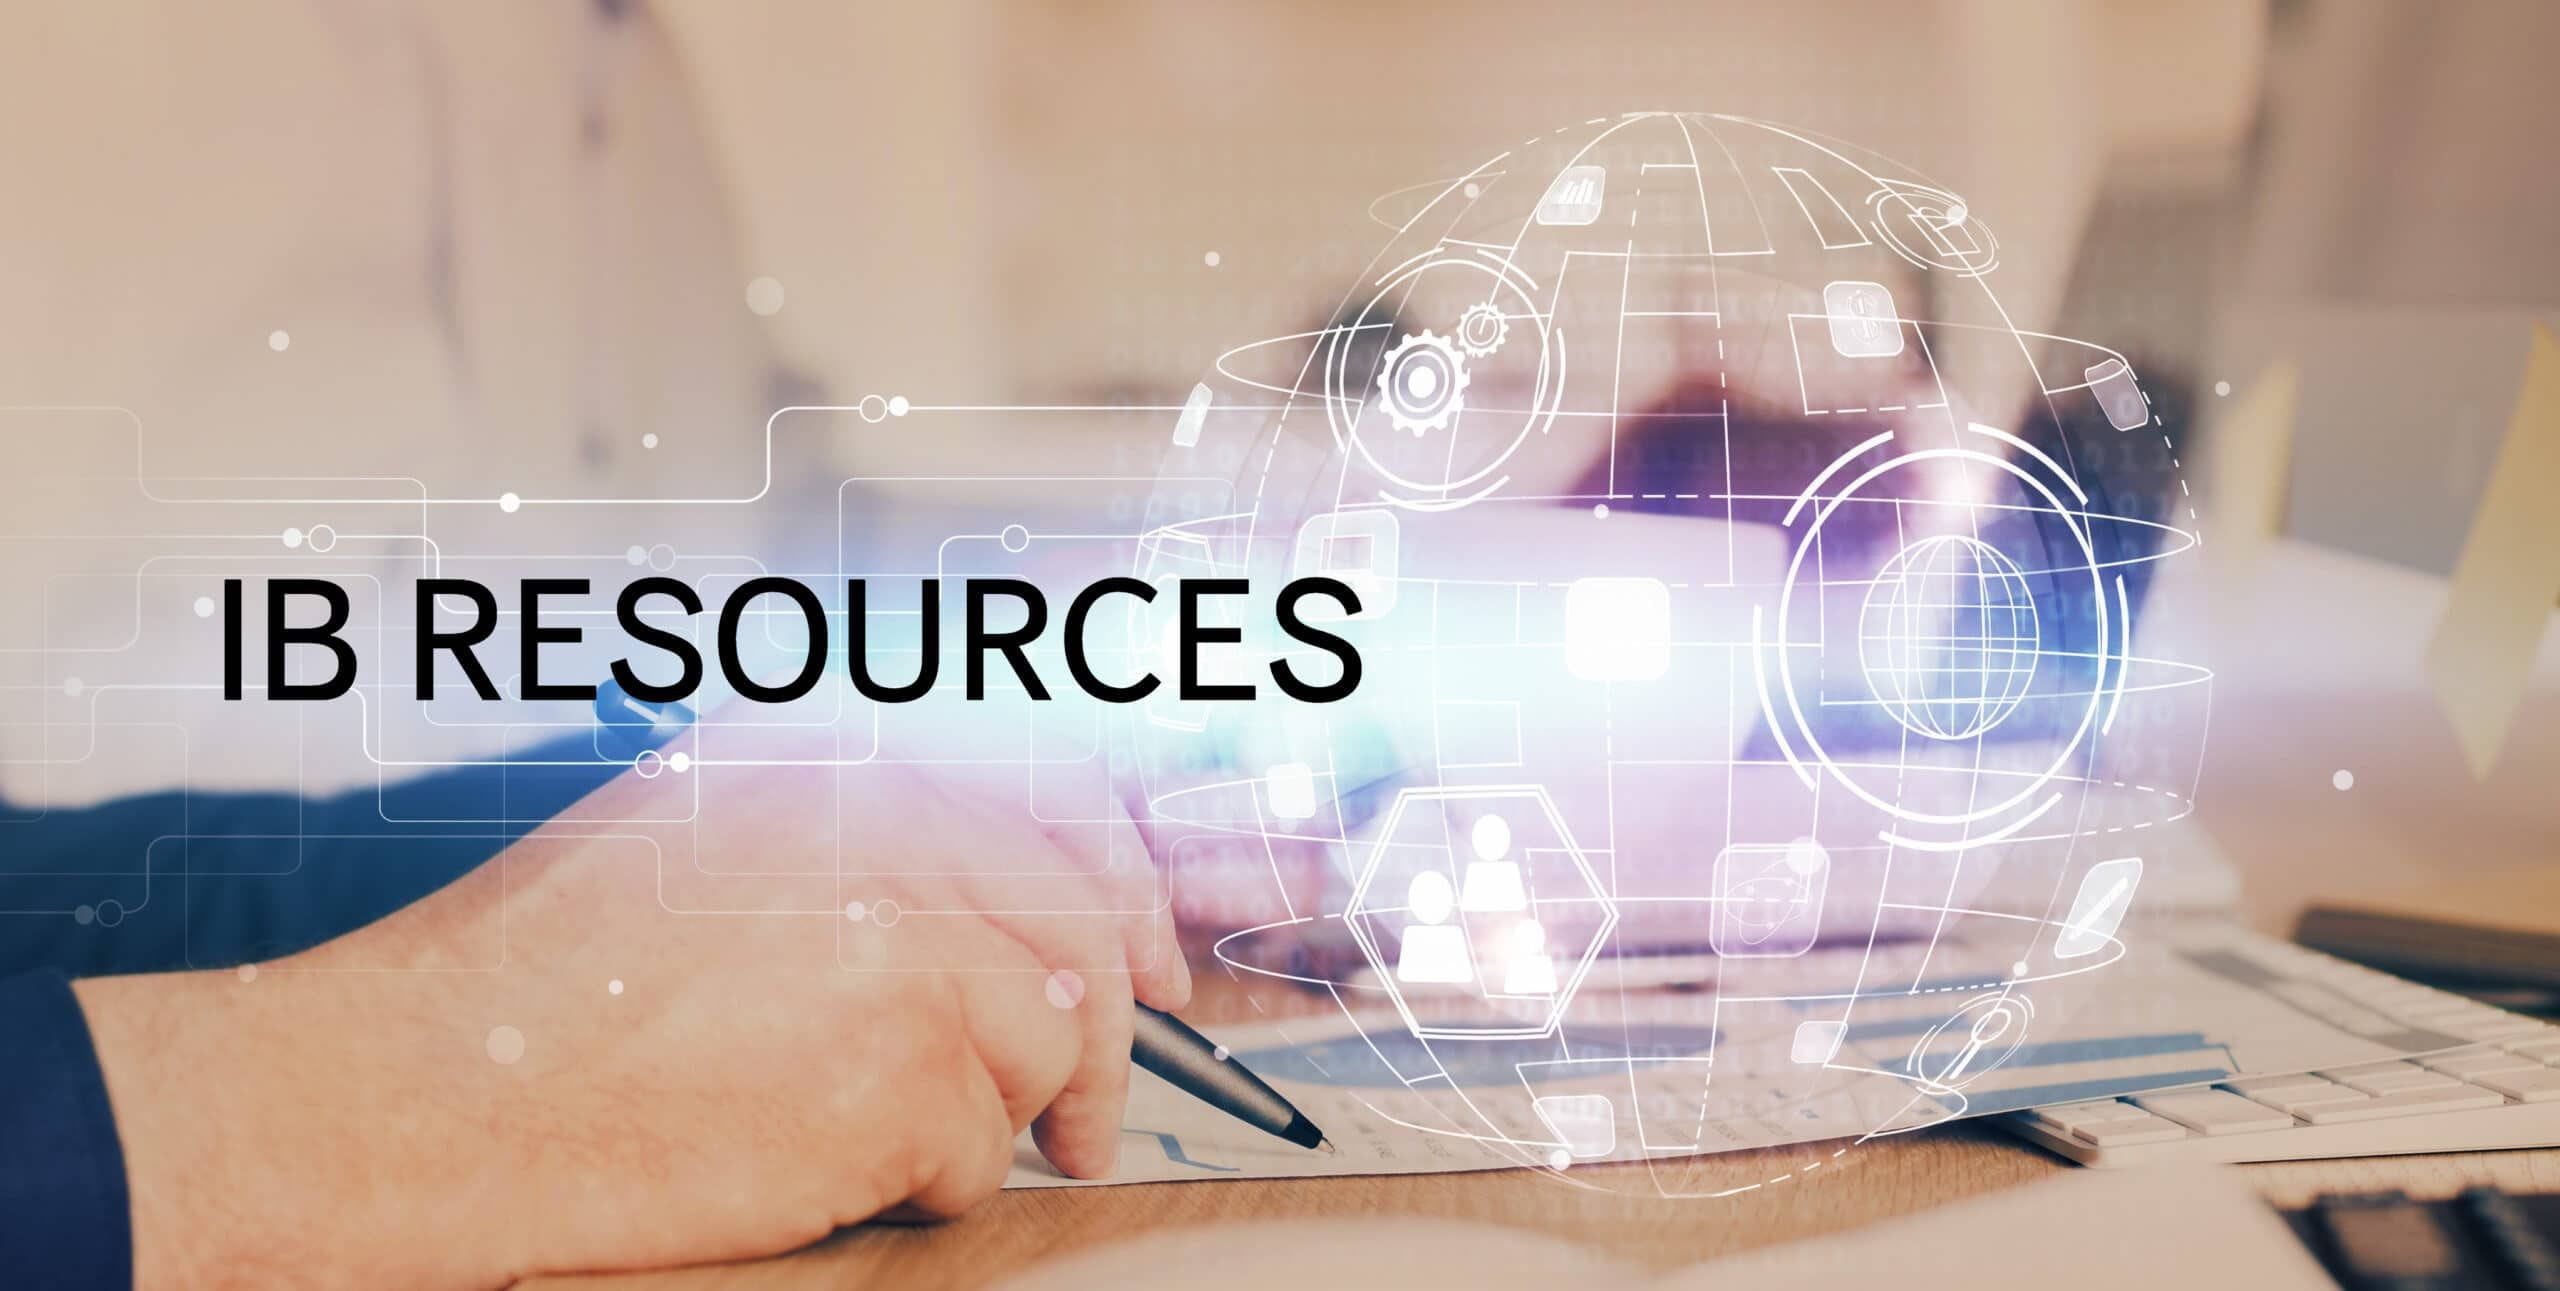 IB RESOURCES AND WEBSITES SELF STUDY WITH HACK YOUR COURSE